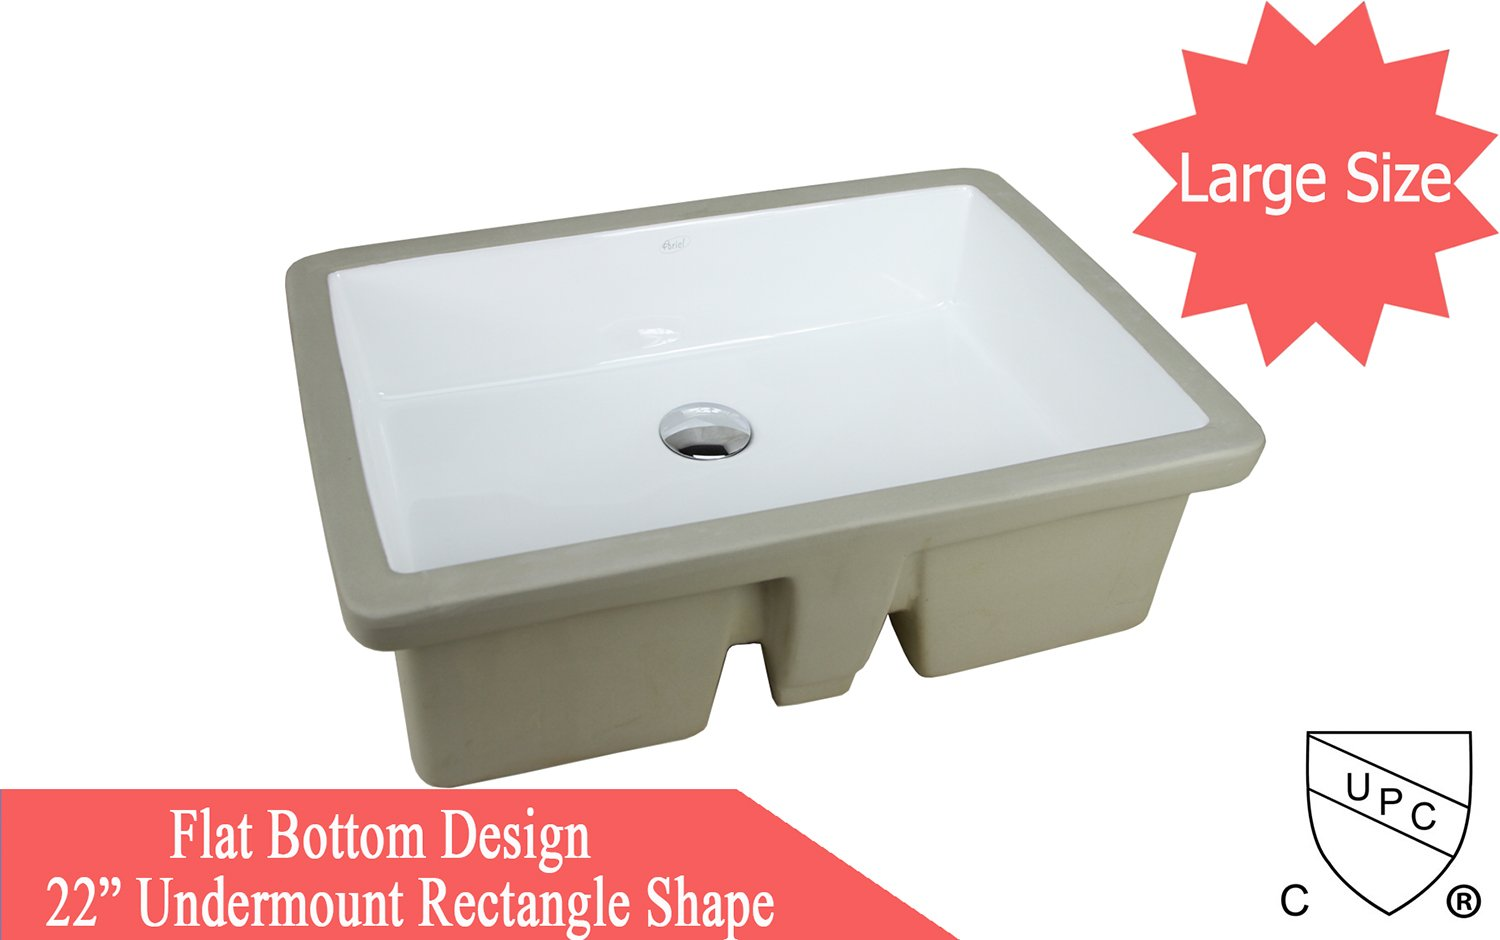 LARGE 22 Inch Rectrangle Undermount Vitreous Ceramic Lavatory Vanity Bathroom Sink Pure White RP595P